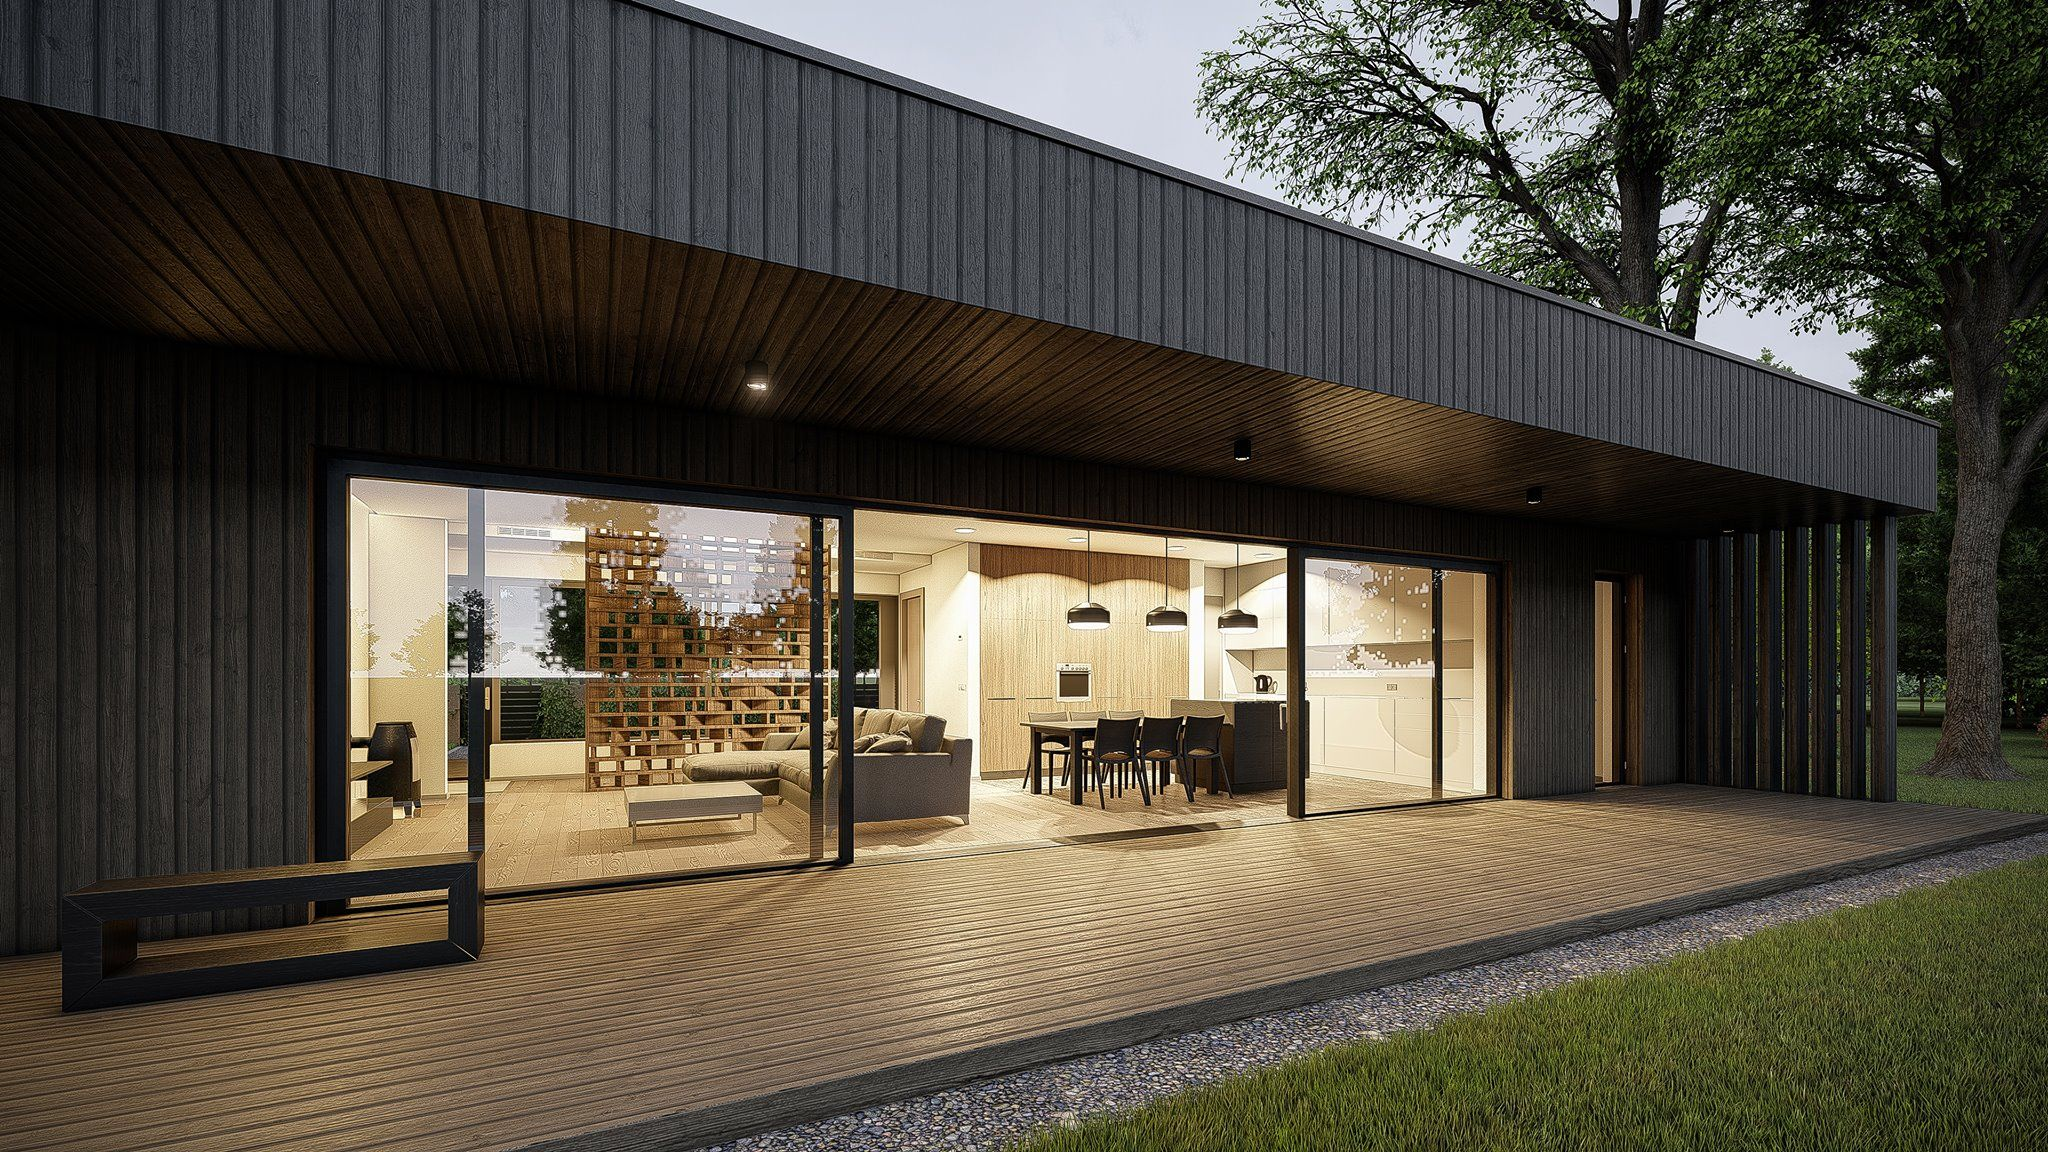 Modern house workshop rendered in lumion 8 pro by fatih eksi view the whole